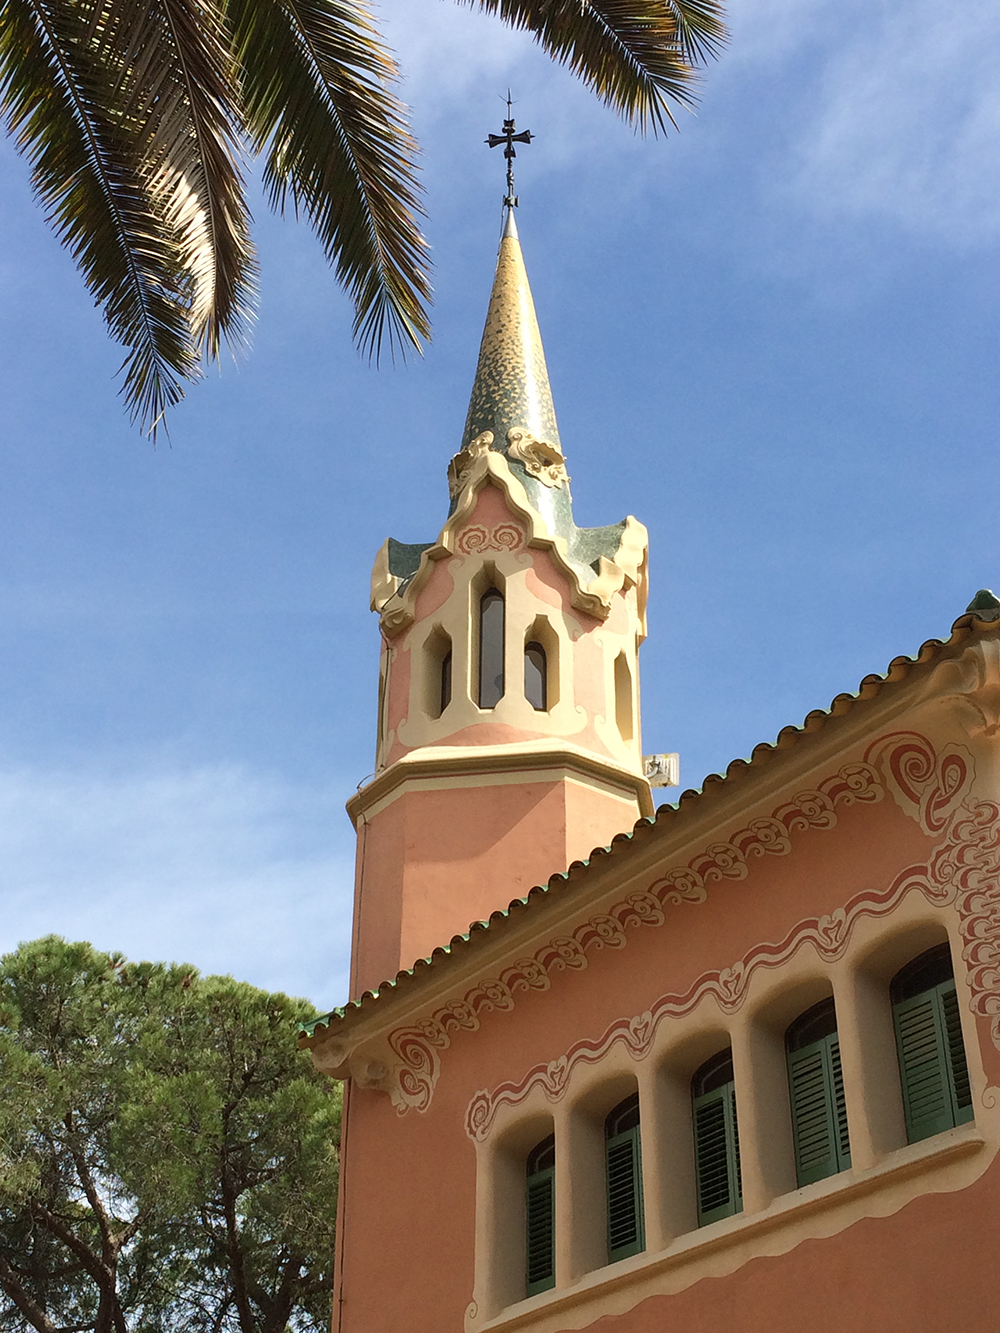 Church sttple in Barcelona Spain with palm tree at top Architectural Photography